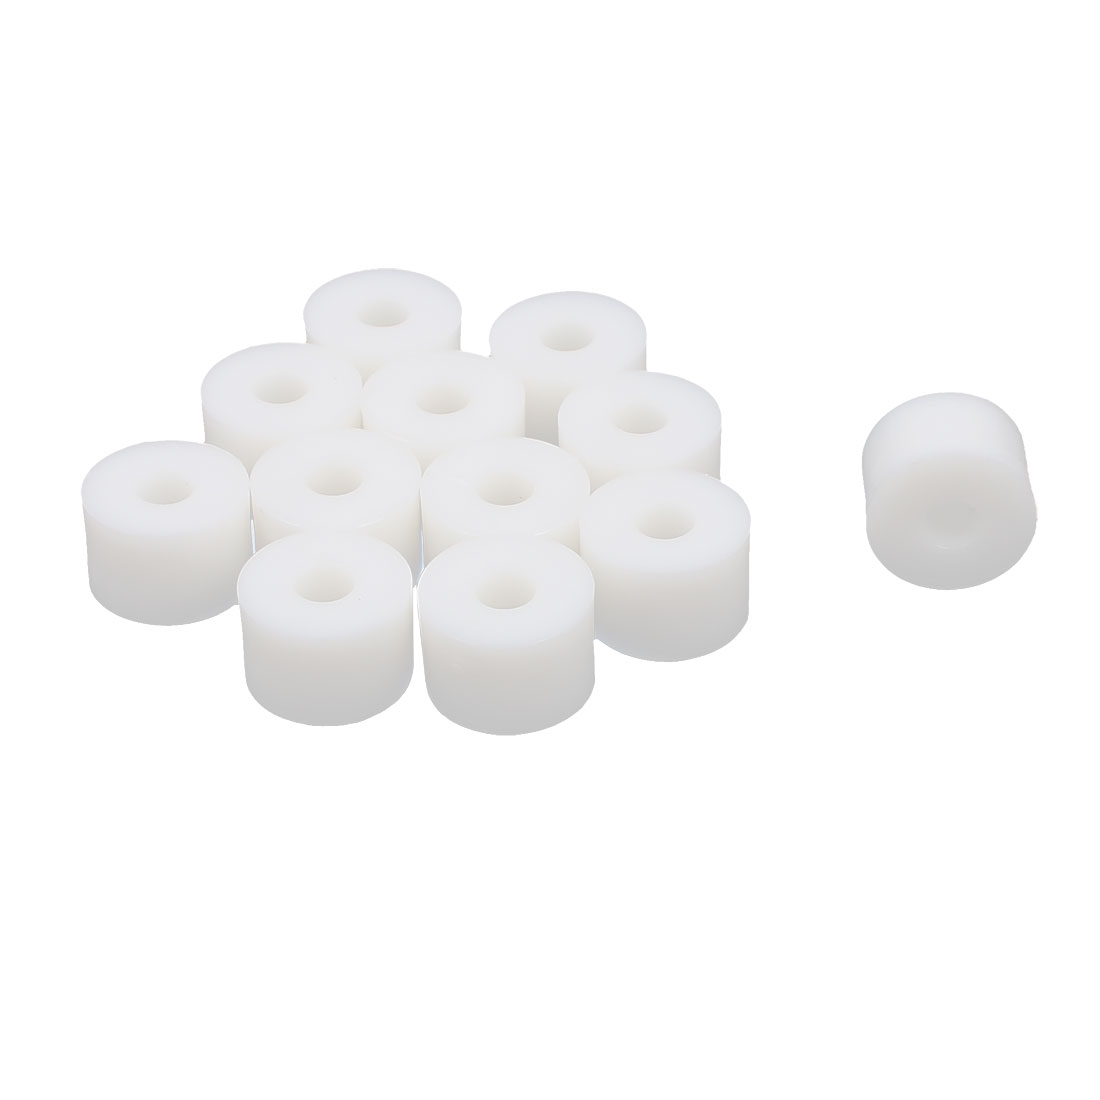 Round Plastic Non-threaded Insulation Column Standoff Support Spacer Washer White 15x10mm 12pcs